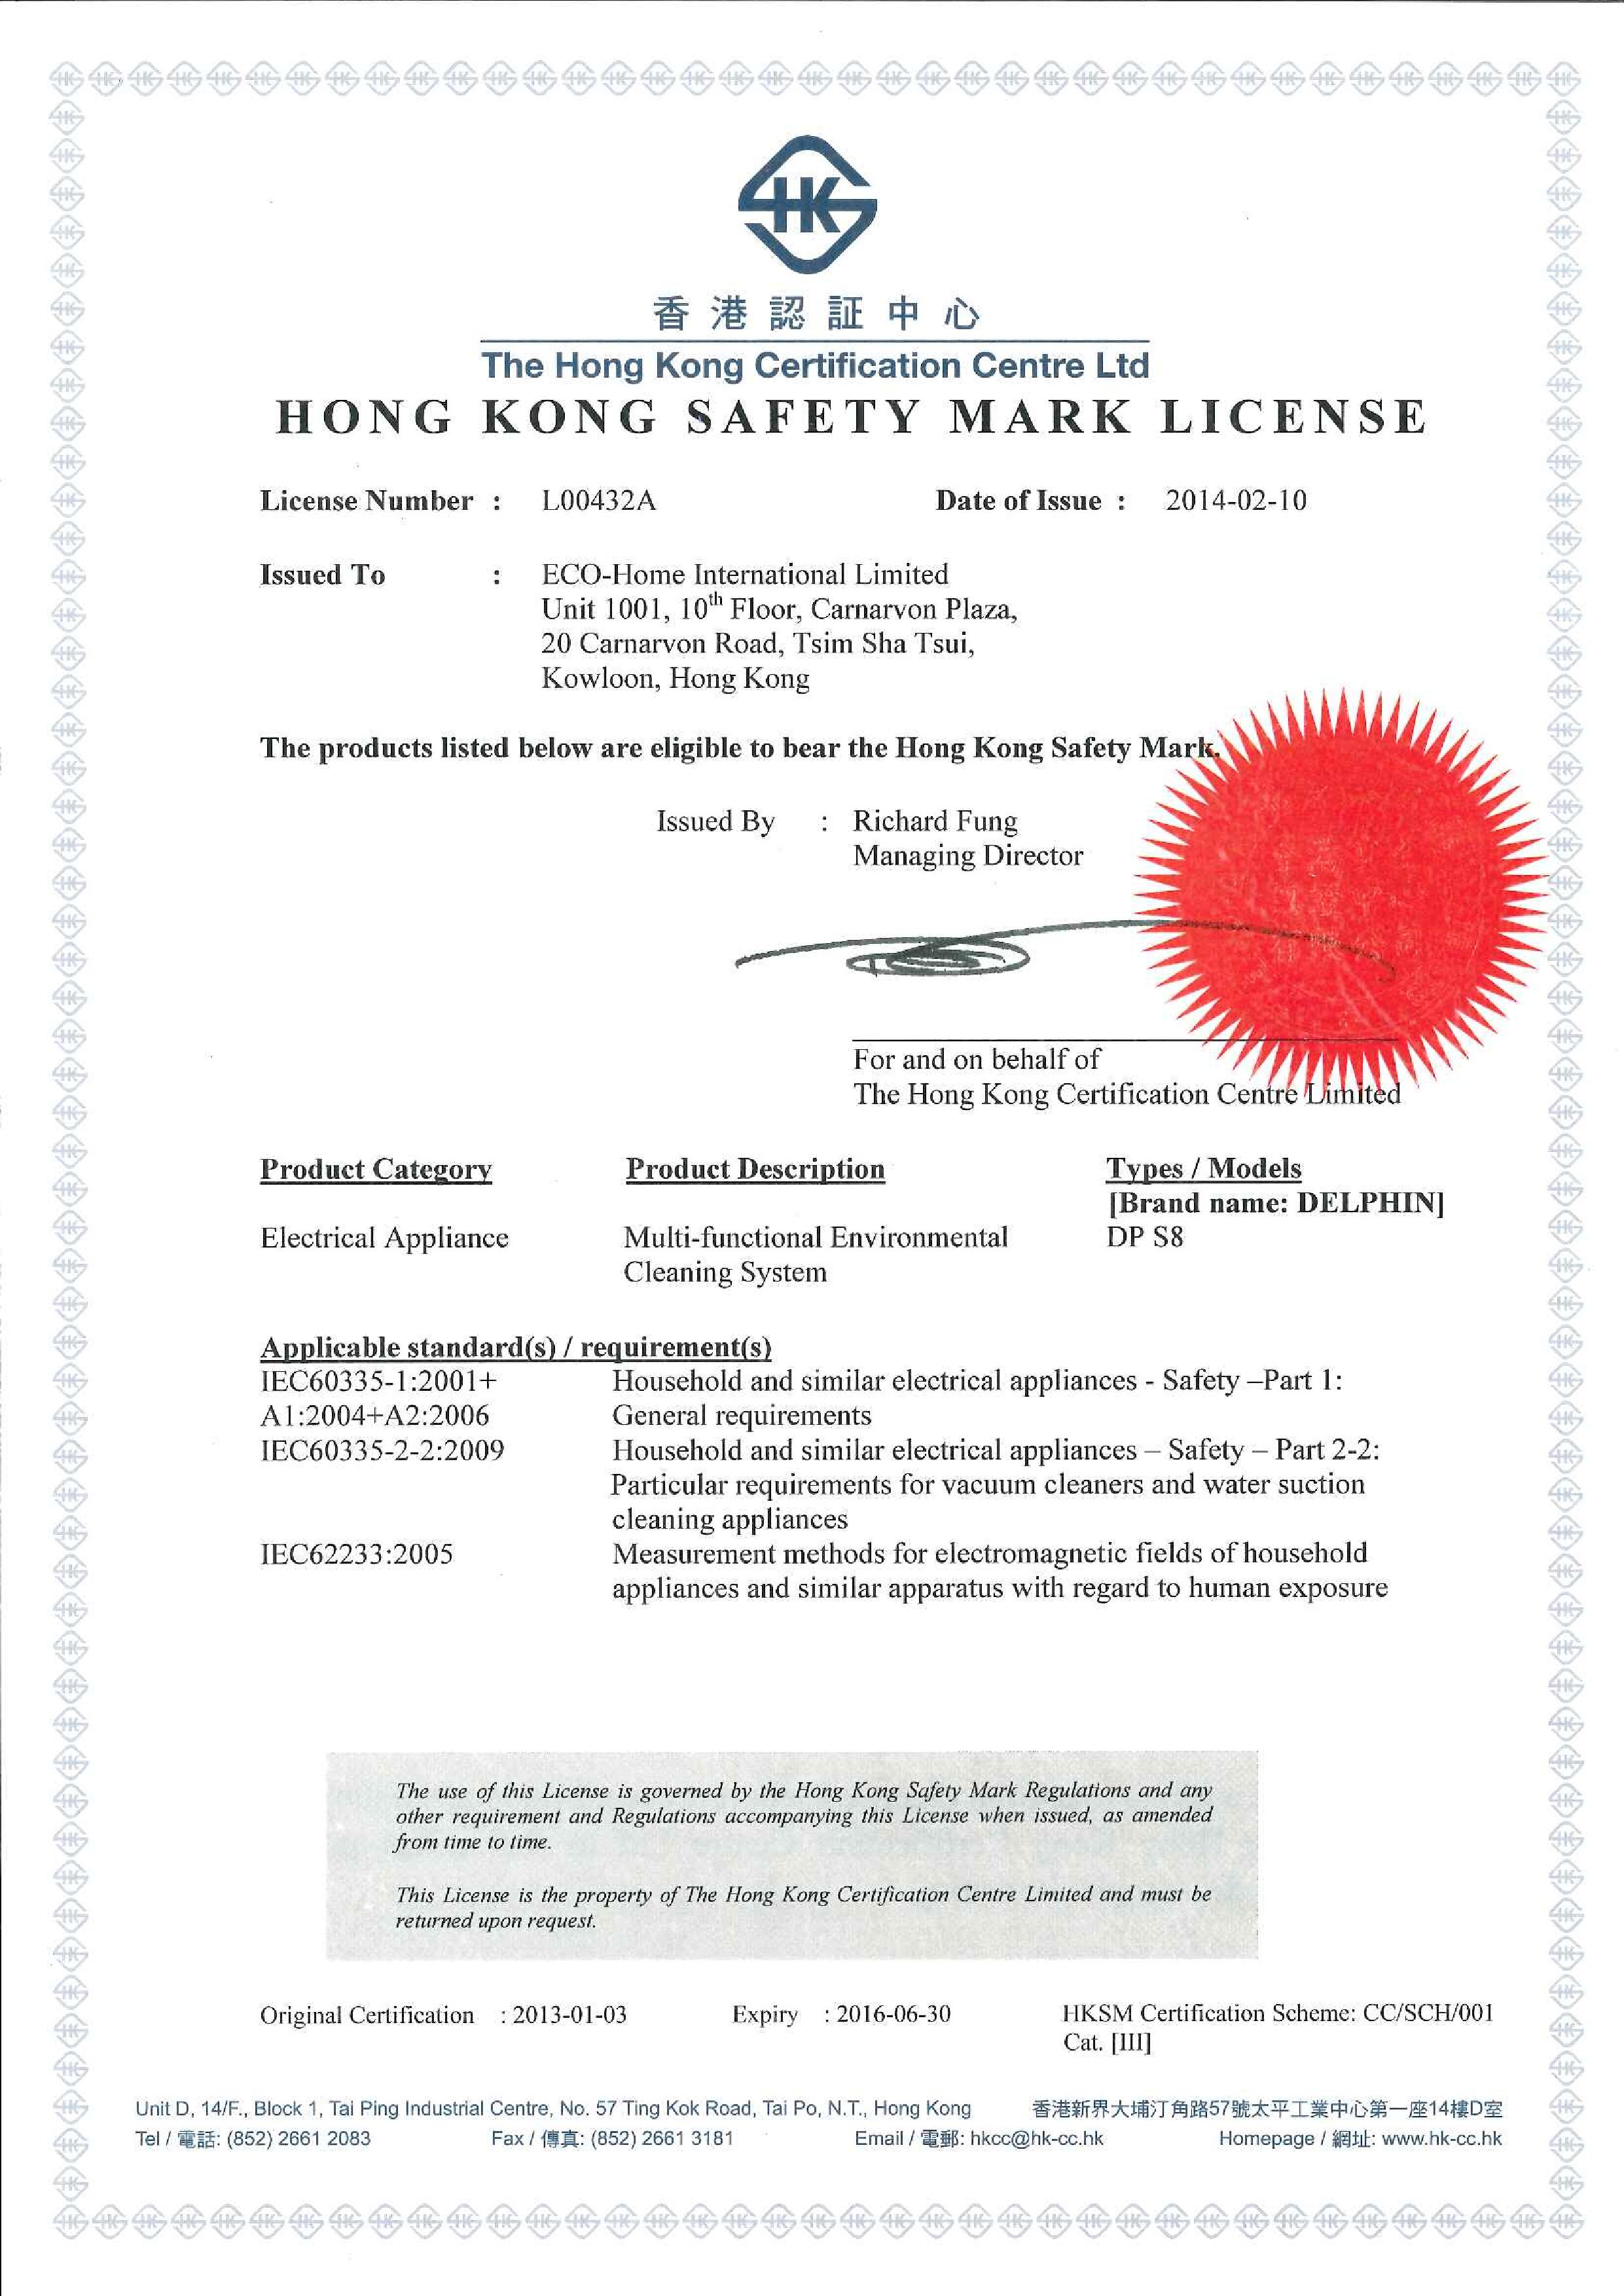 Delphin certifiedrated delphinsystem the hong kong certification centre hkcc formerly hong kong safety institute hksi was established in 1998 by the hong kong standards and testing centre xflitez Image collections